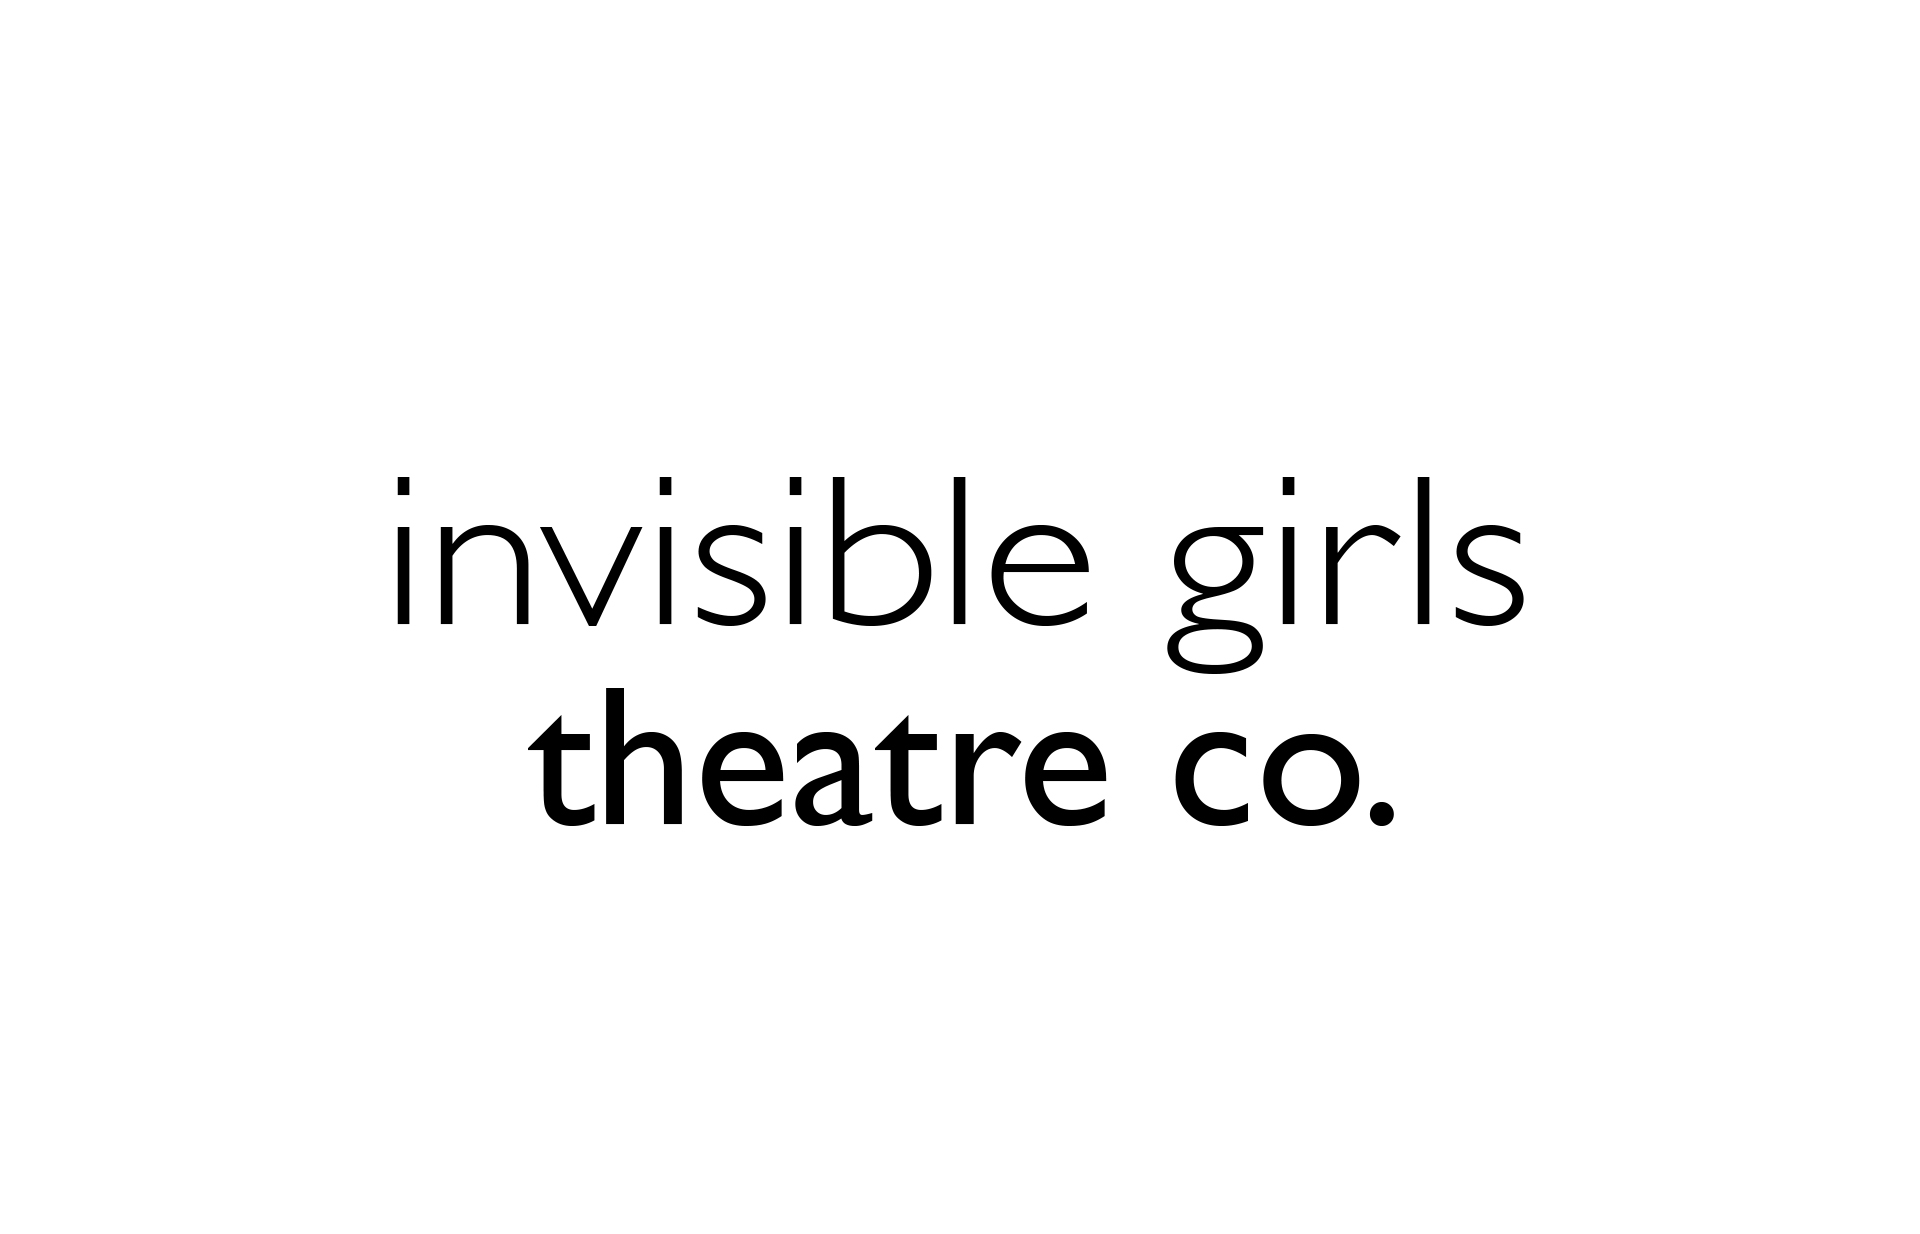 invisible girls theatre co.